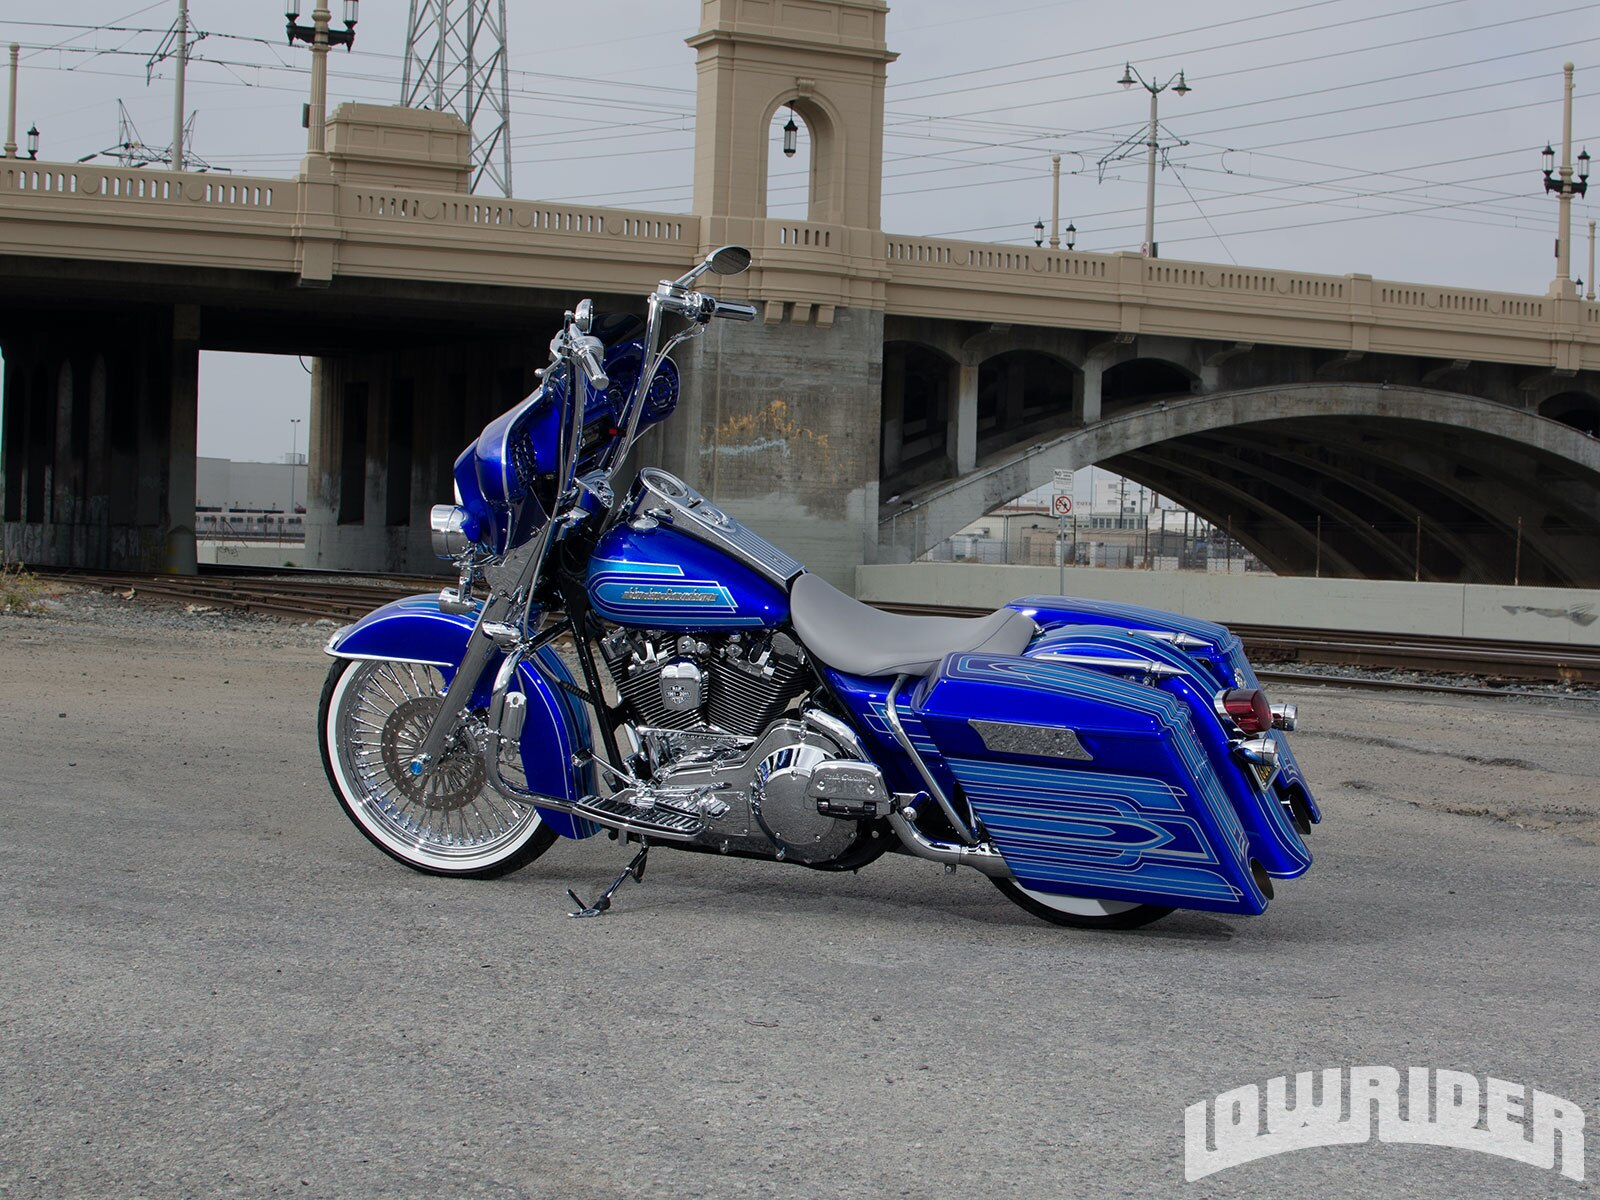 10-2002-harley-davidson-road-king-side-view2